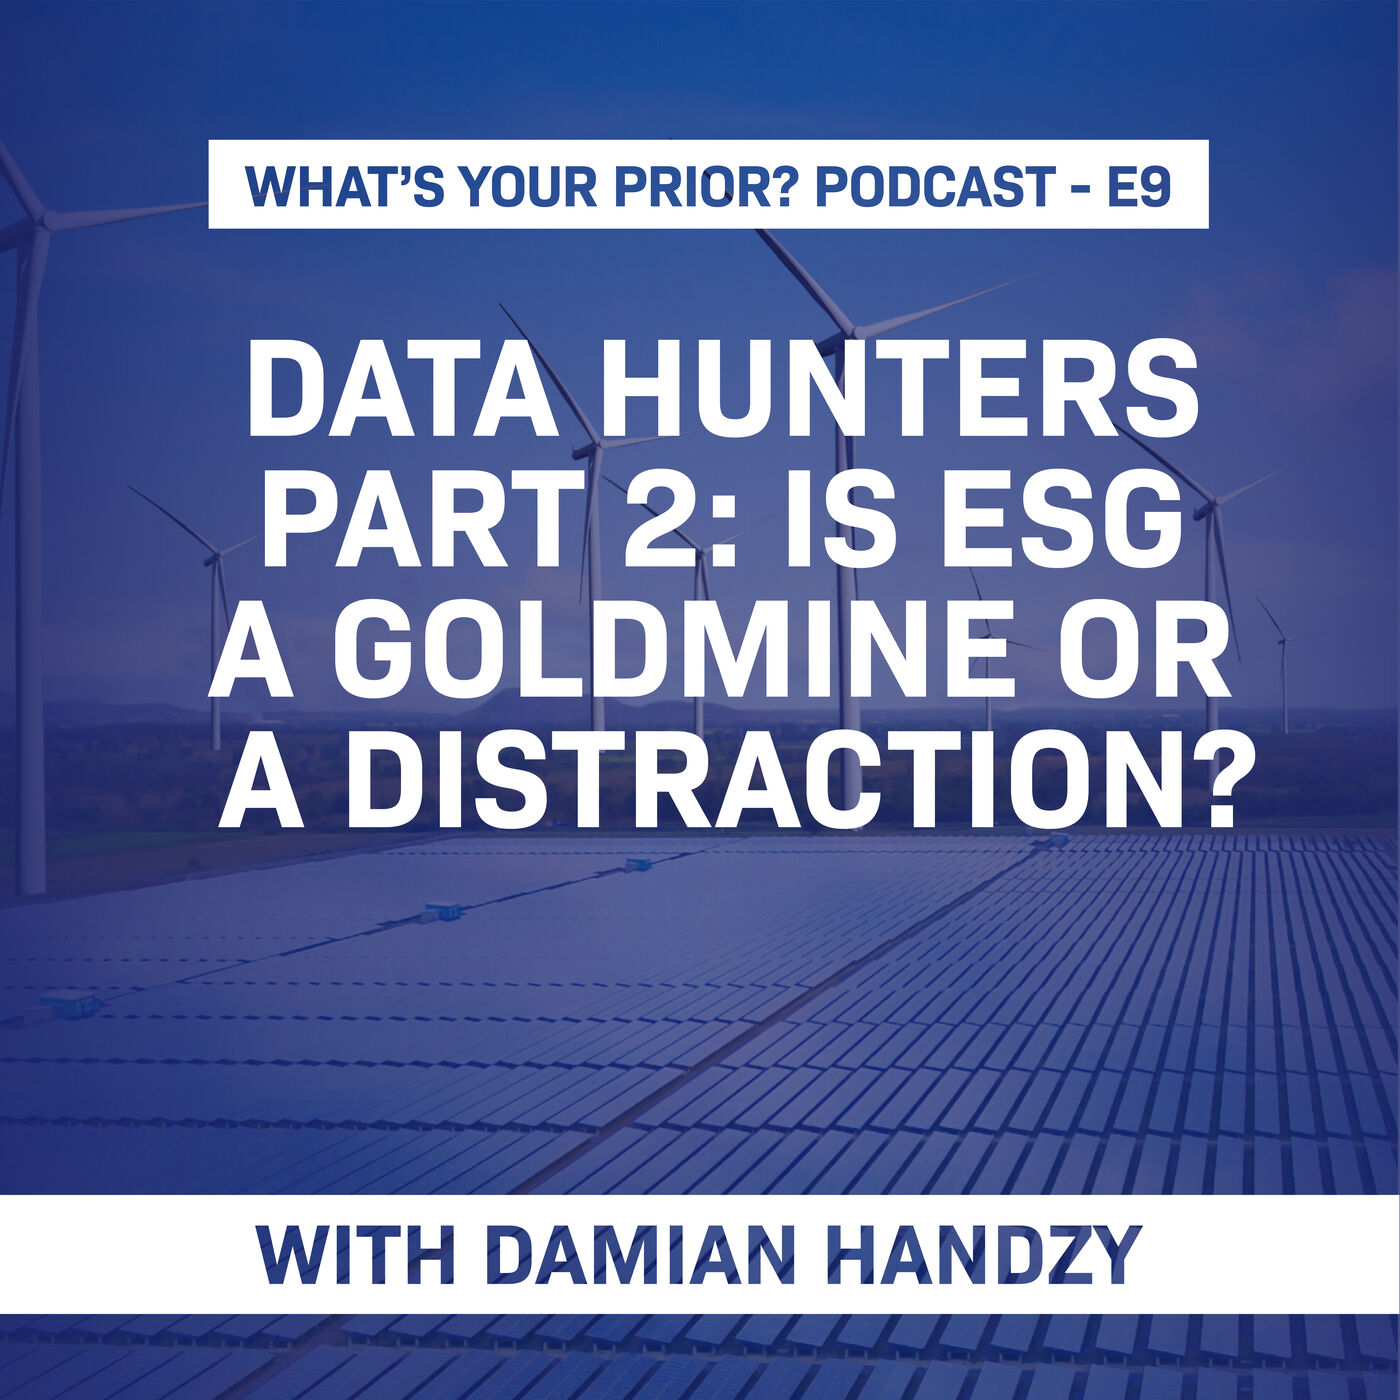 Data Hunters Part 2: is ESG a goldmine or a distraction?